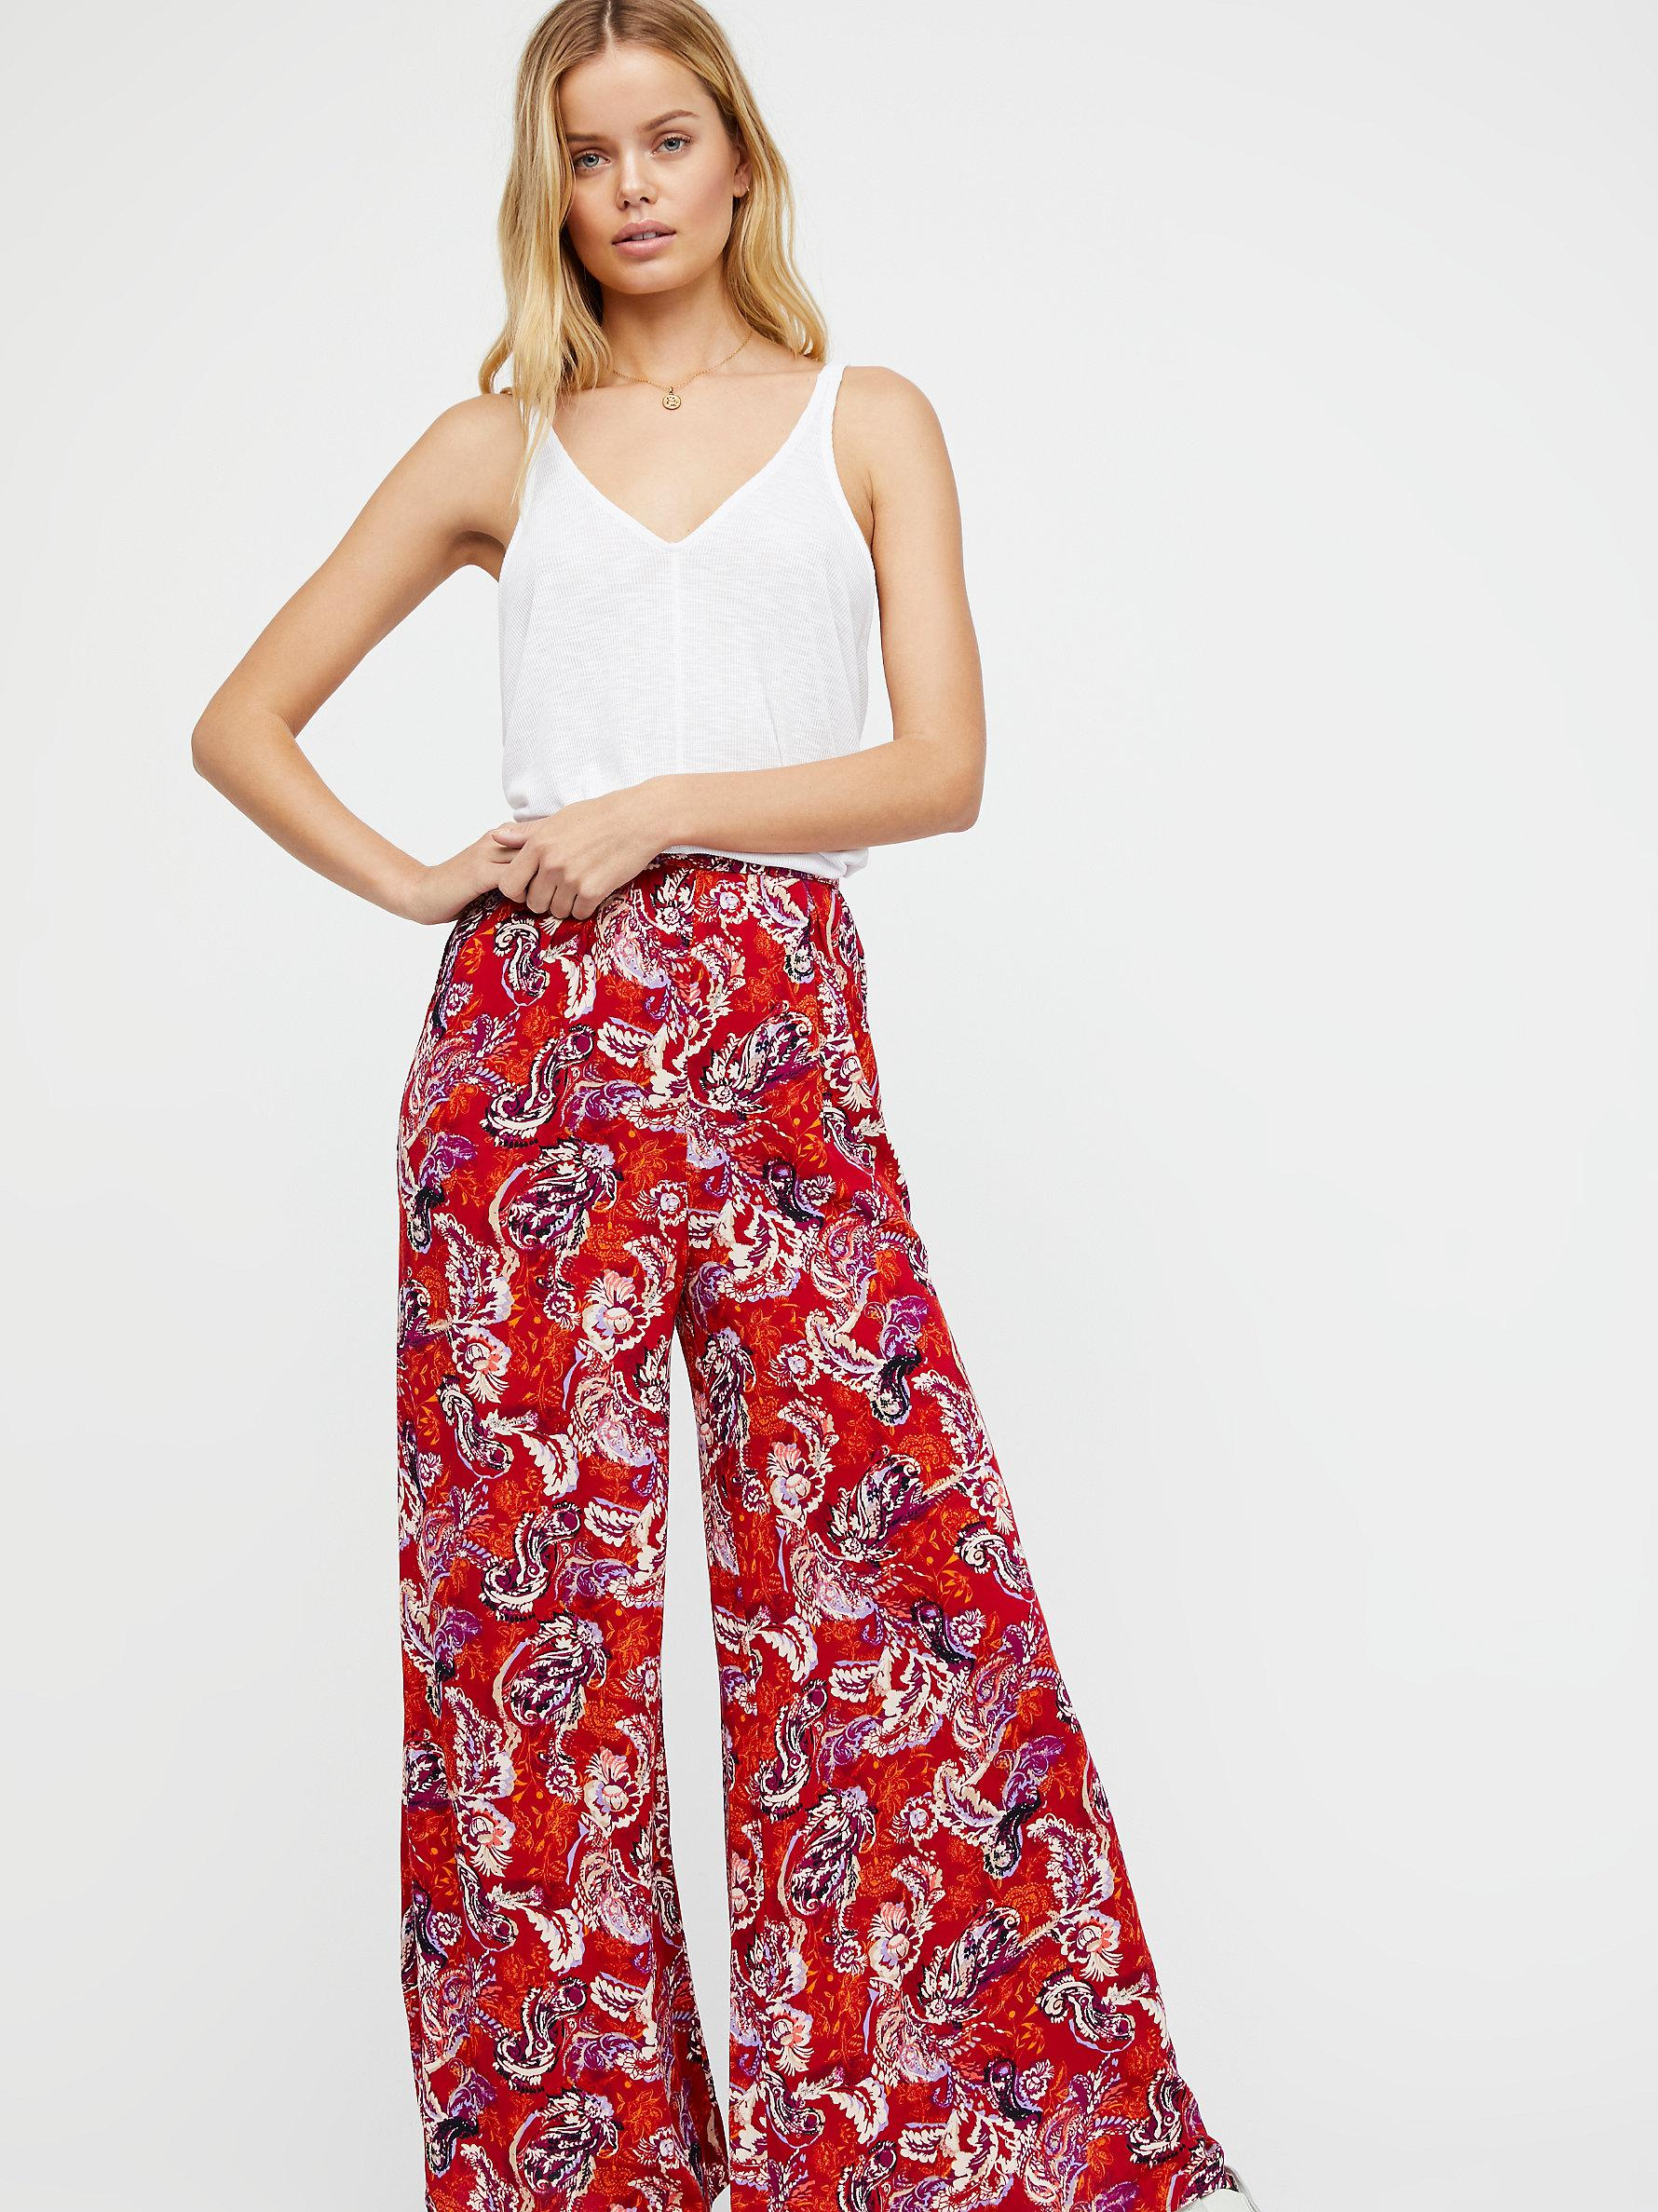 00a134088784 Lyst - Free People Late Night Sleep Pant in Red